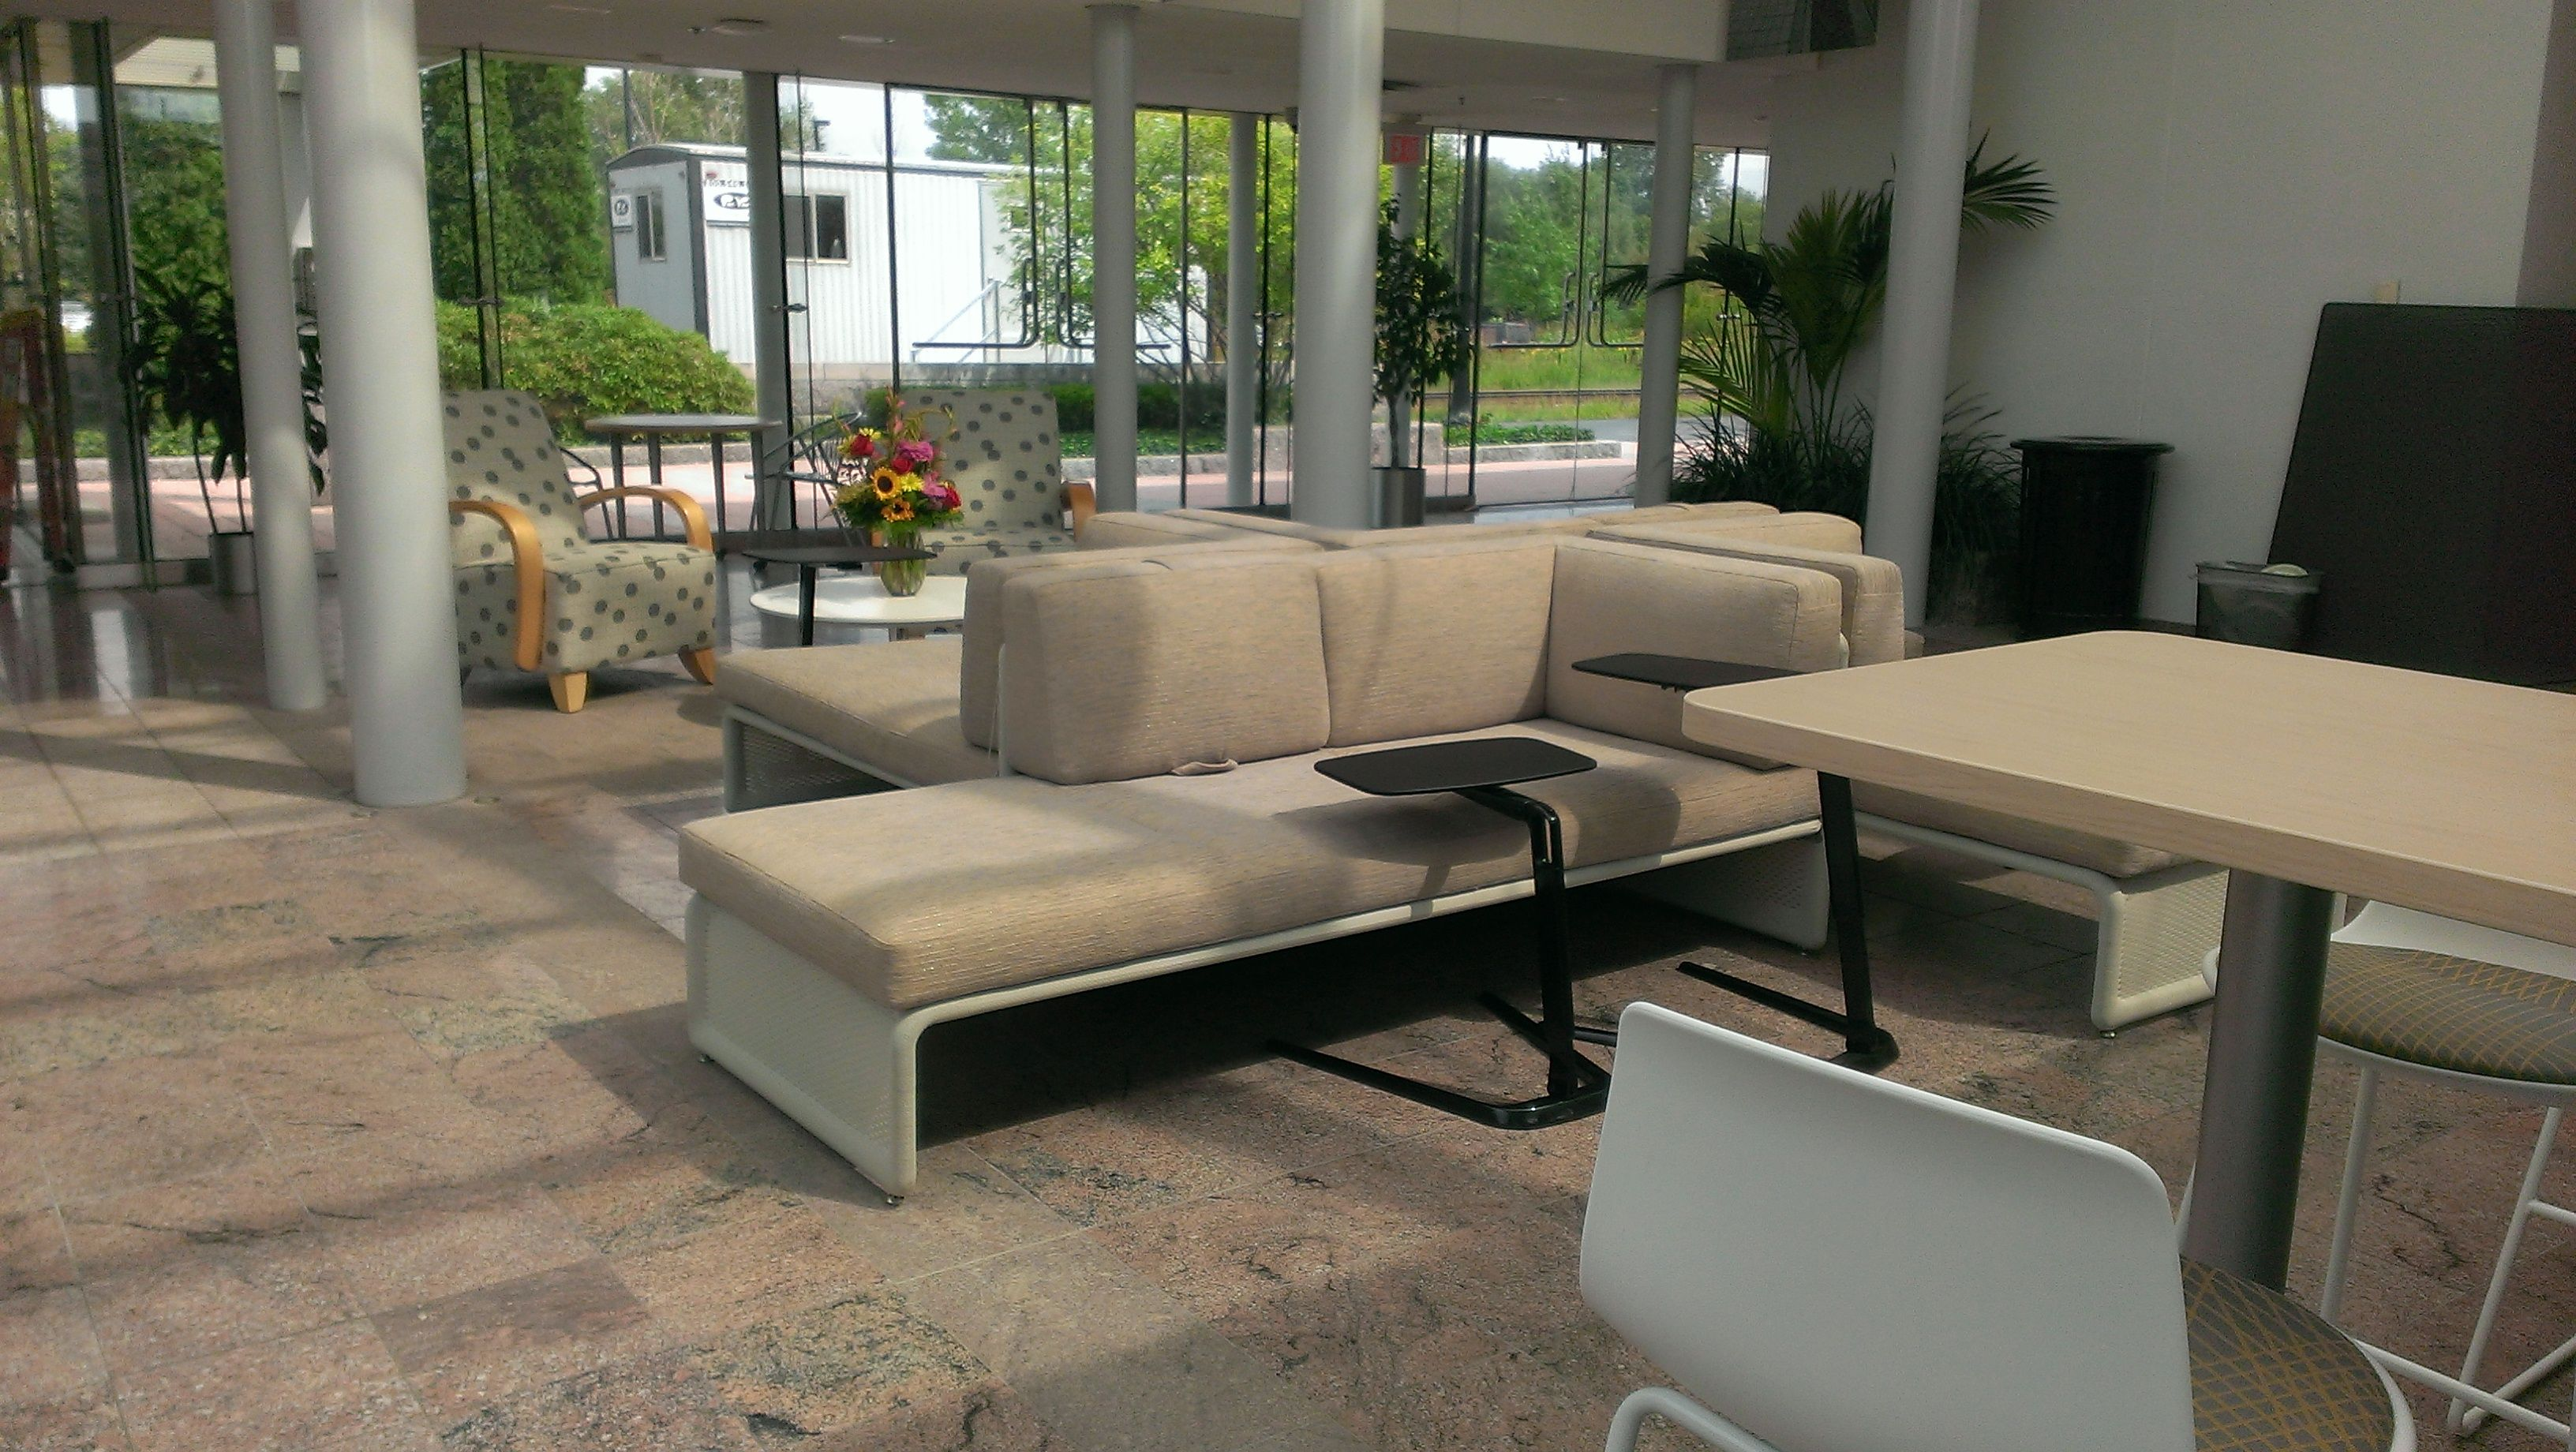 Lagunitas Chaise Lounge, Low Backs And Freestand Bring A Relaxed Setting  For One Or Two